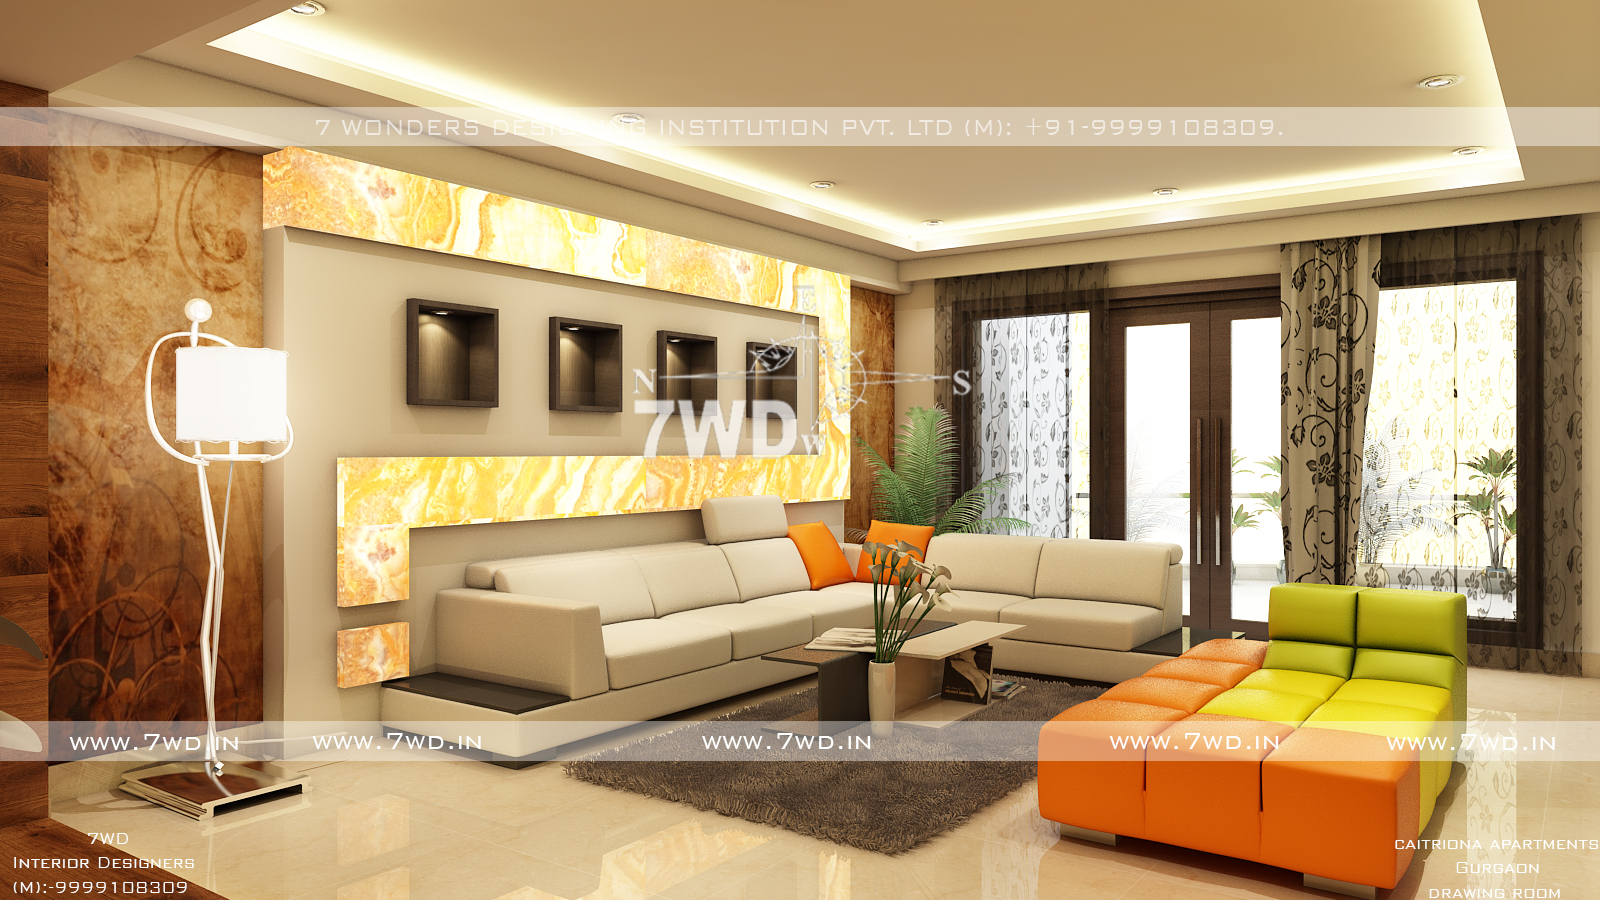 Small Home Interior Design Ideas: Interior Designers In Delhi NCR , India